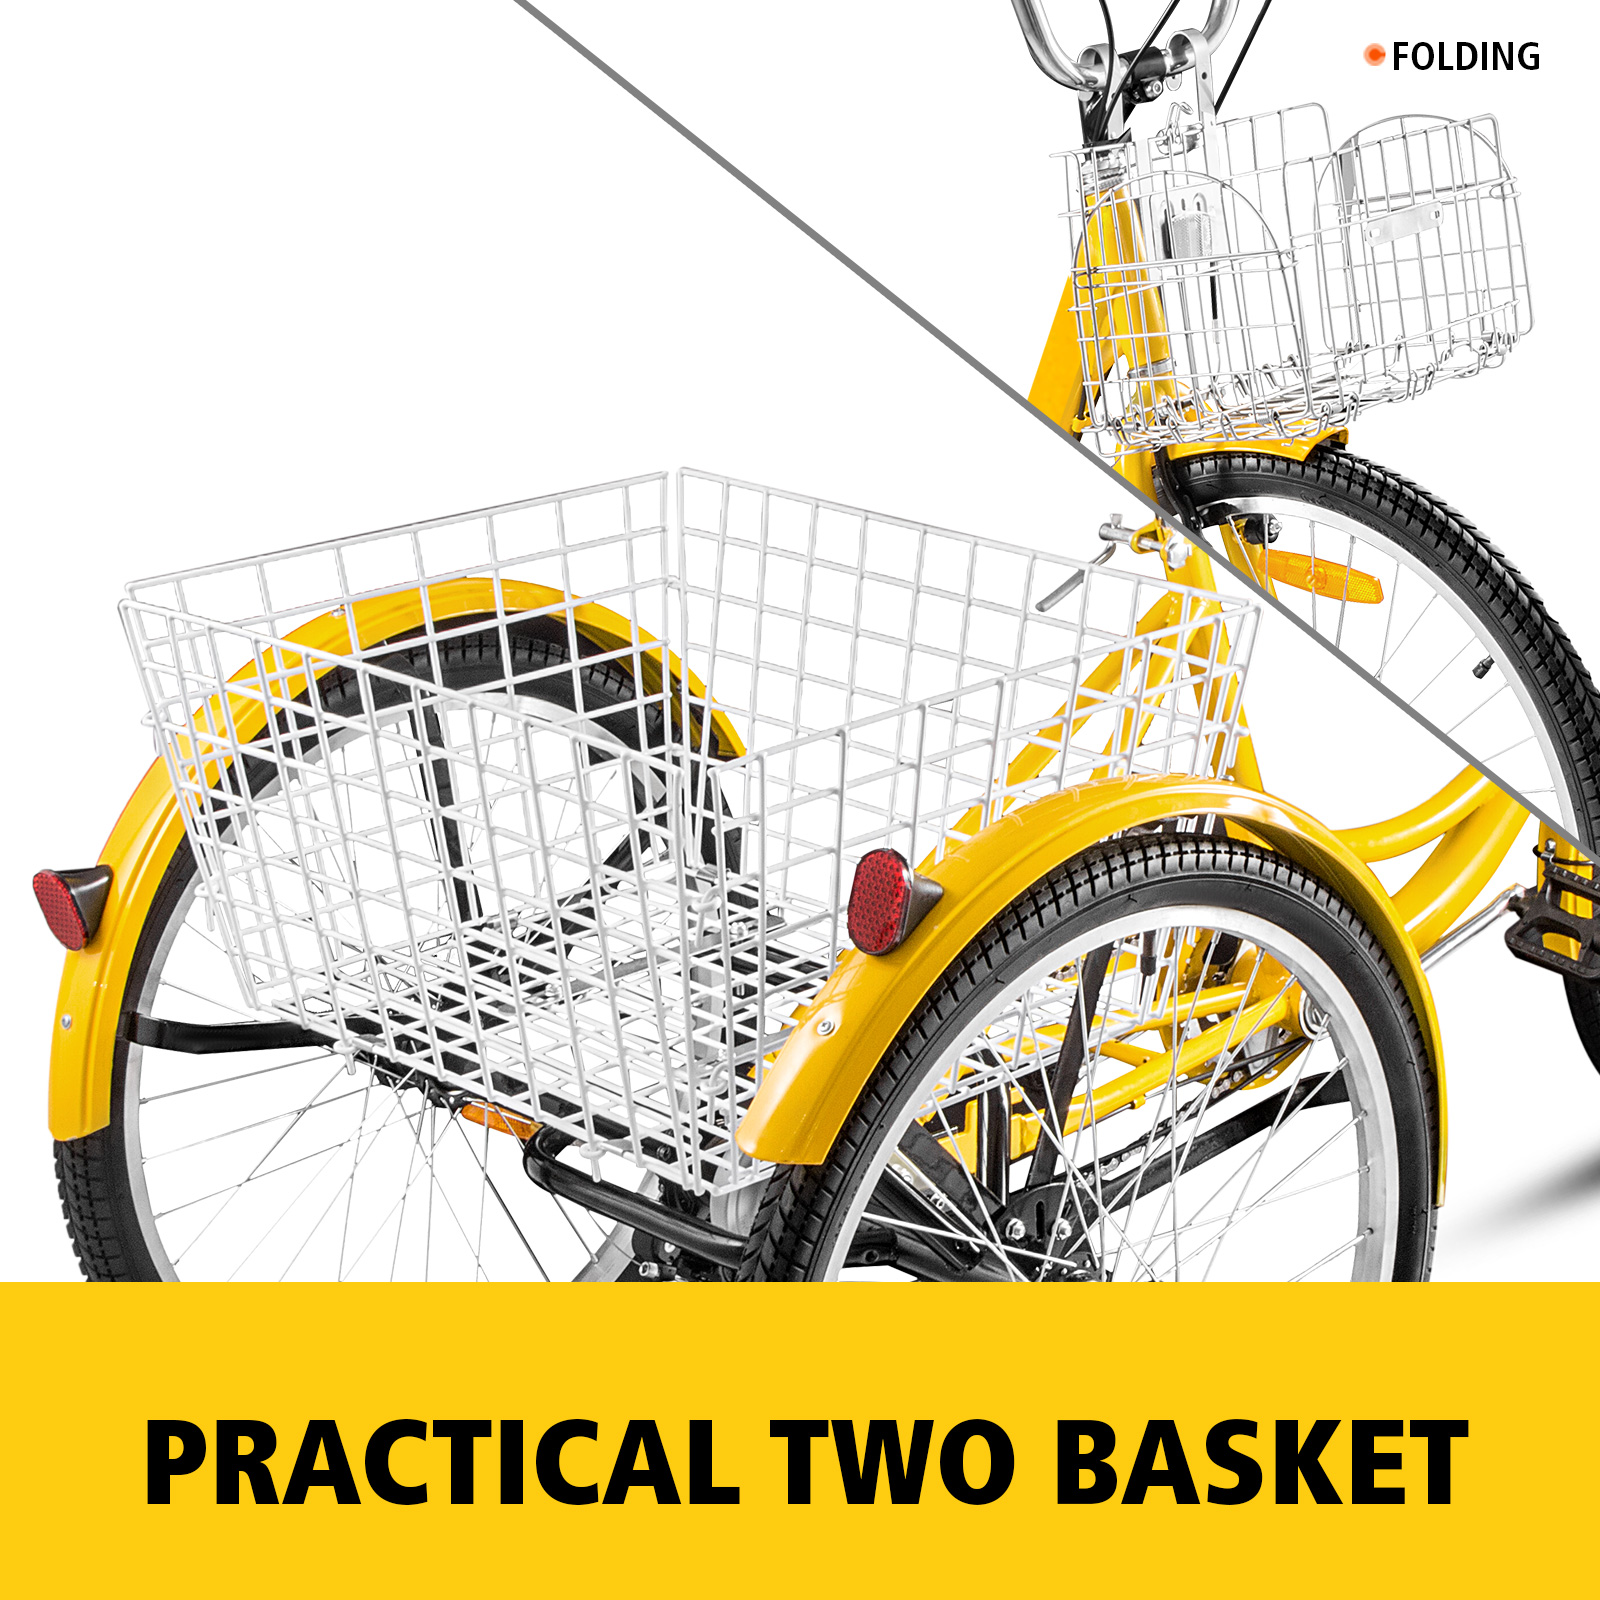 20-24-26-034-Adult-Tricycle-1-7-Speed-3-Wheel-For-Shopping-W-Installation-Tools miniature 379